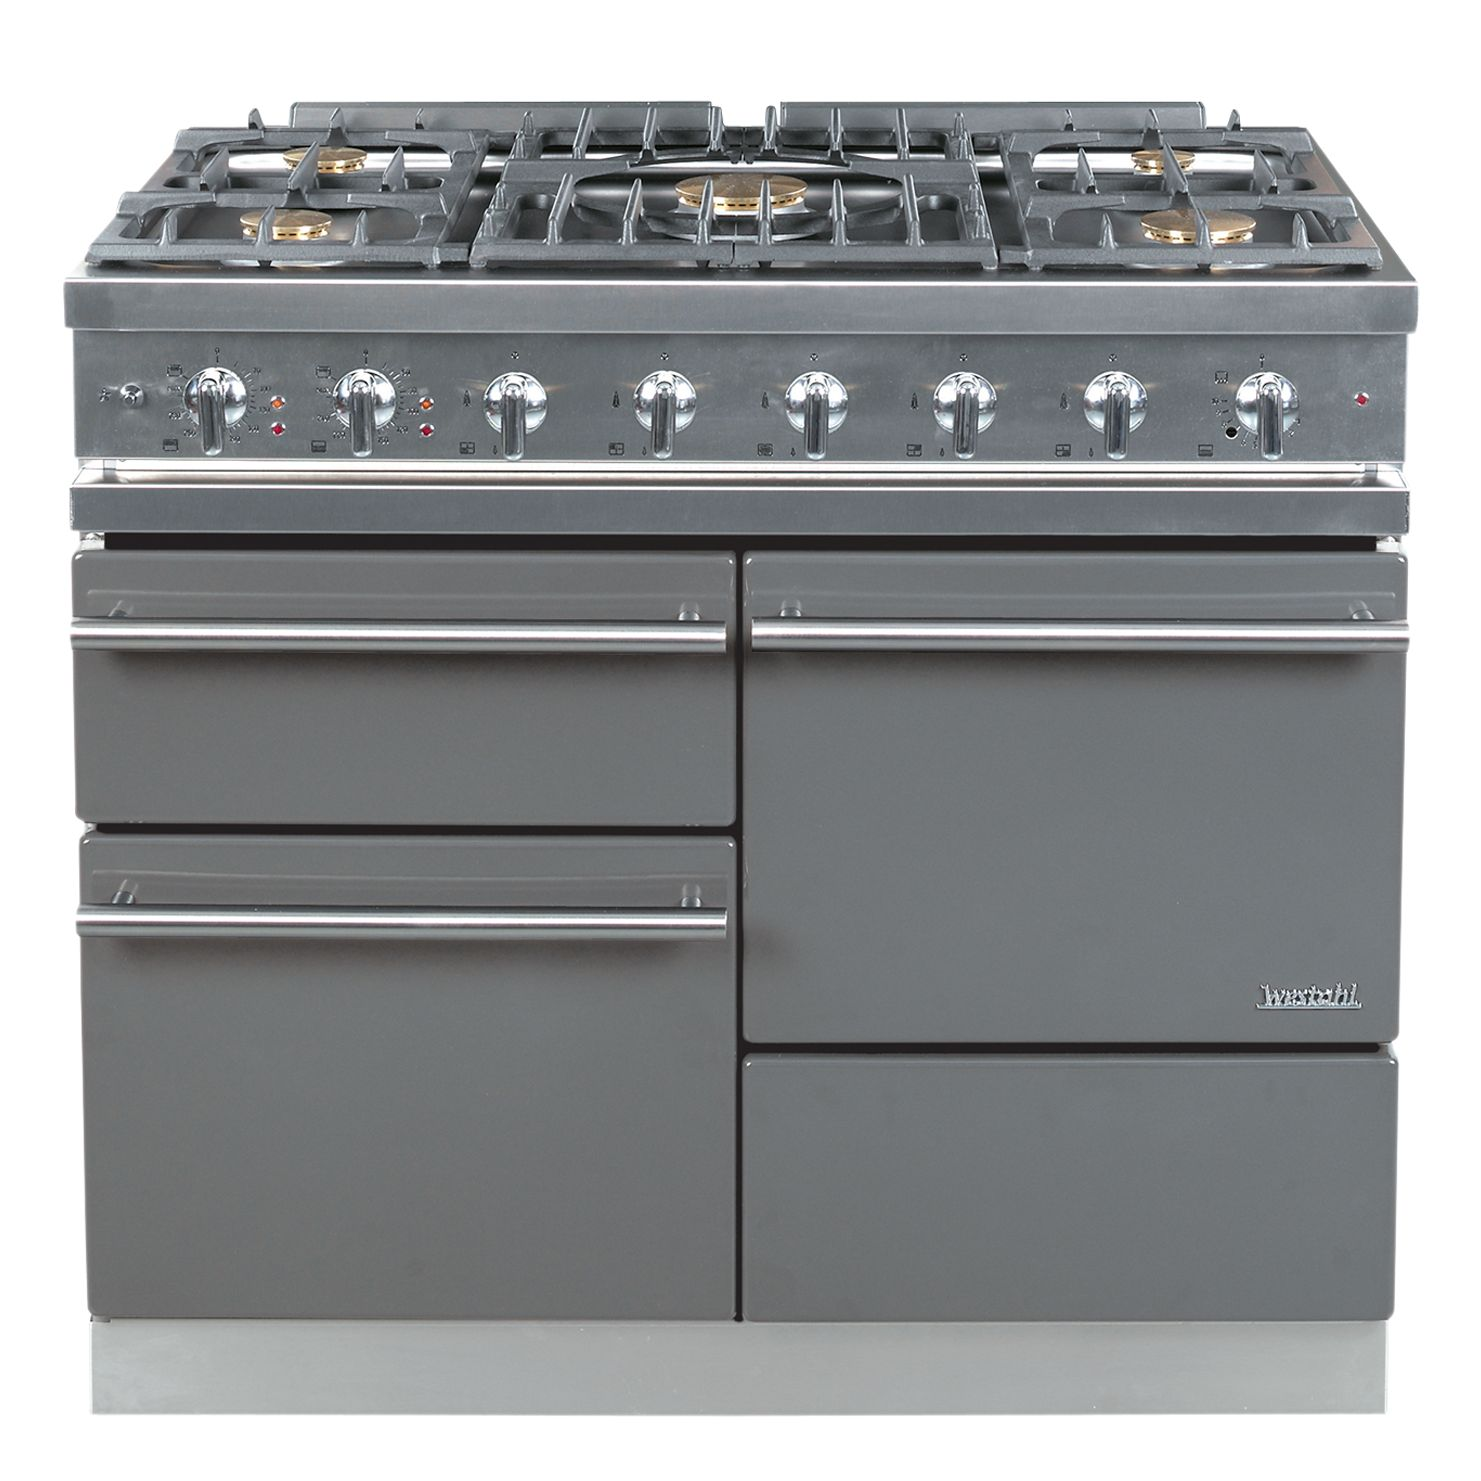 Westahl Macon WG1053GECT Dual Fuel Cooker, Stainless Steel at John Lewis